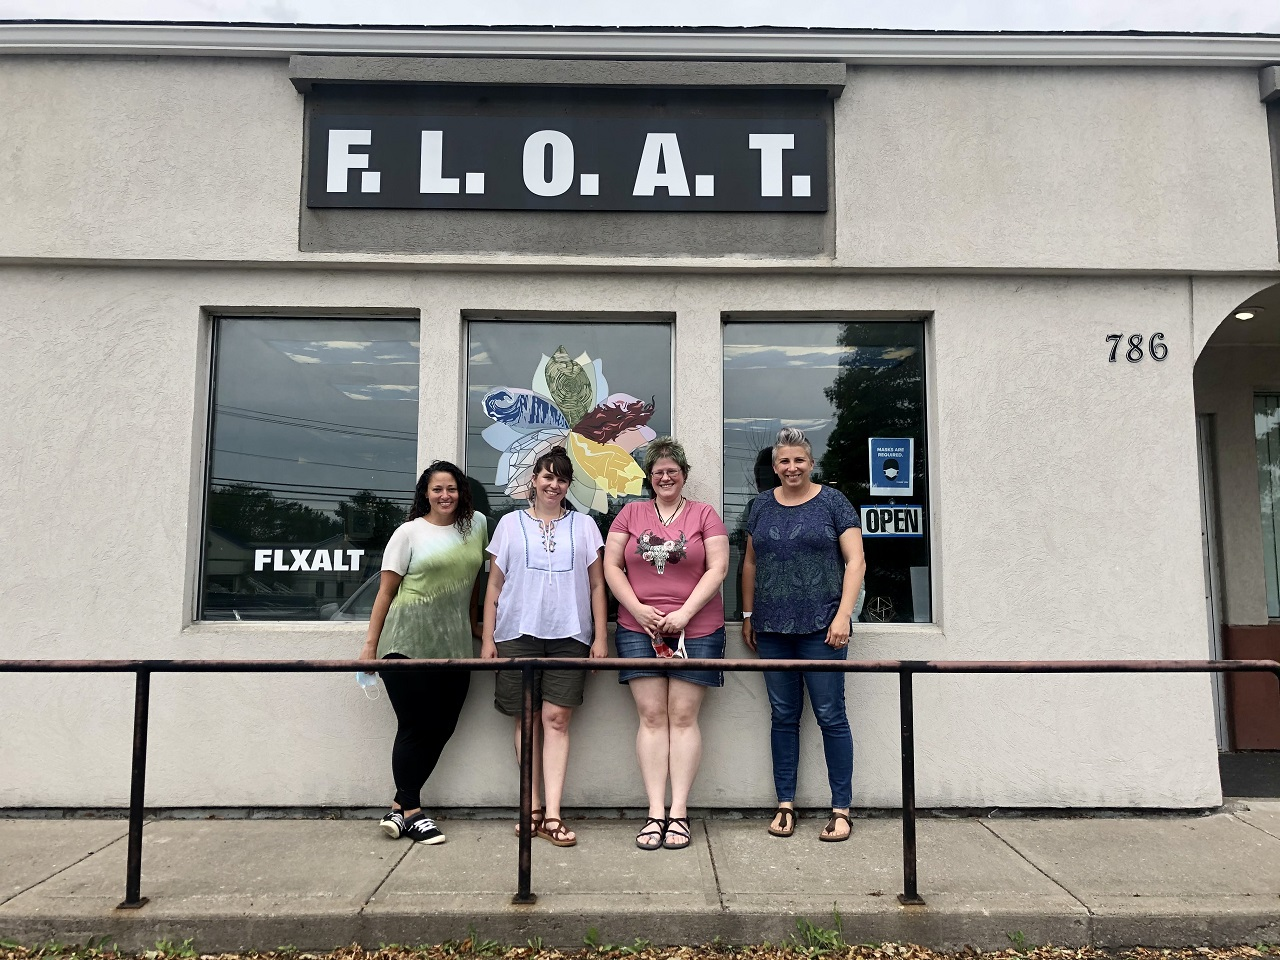 F.L.O.A.T. offers more than just your average therapy